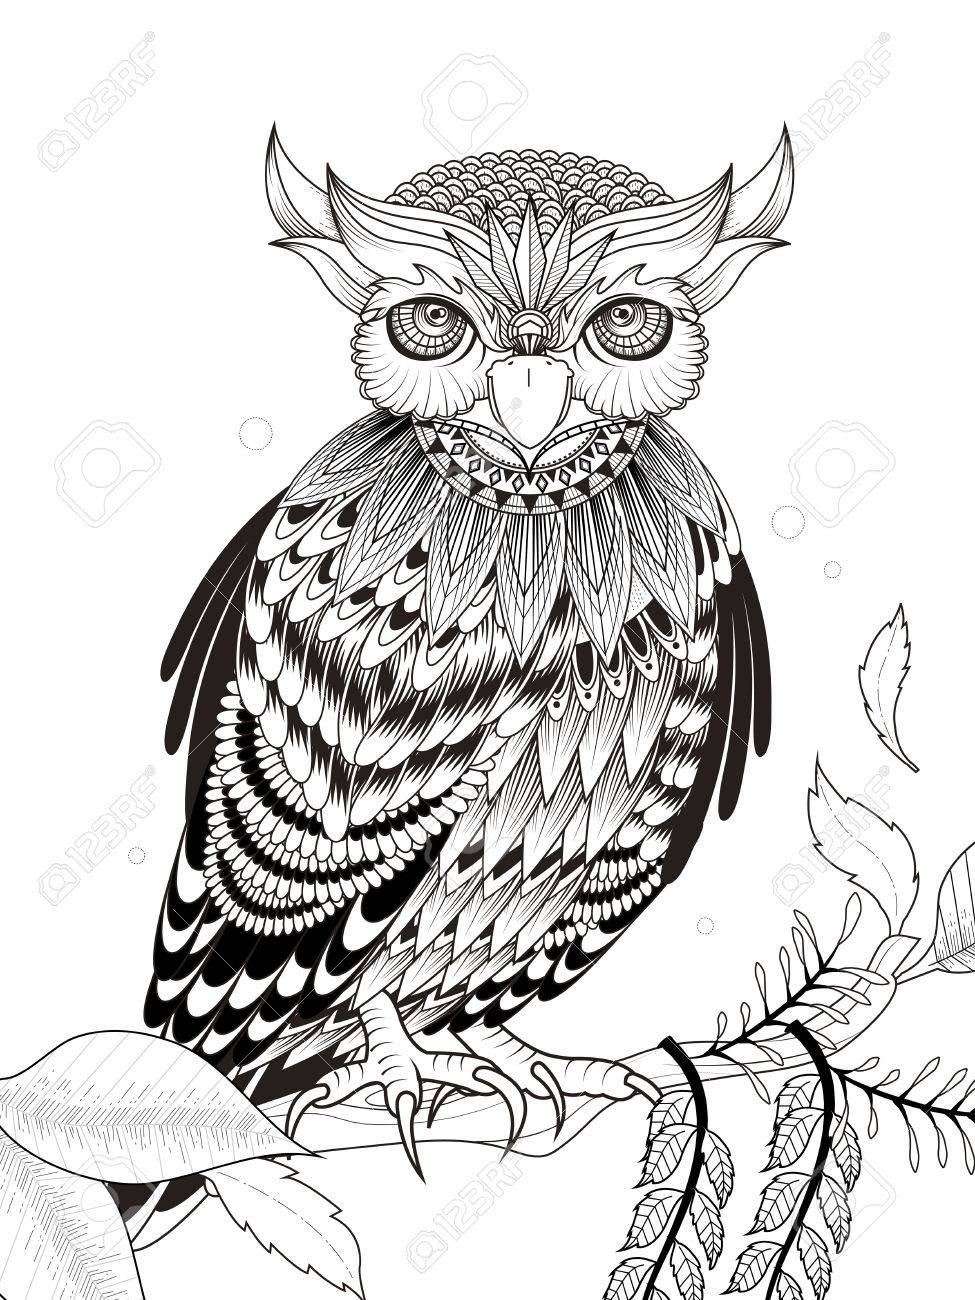 Elegant Owl Coloring Page In Exquisite Line Royalty Free Cliparts ...